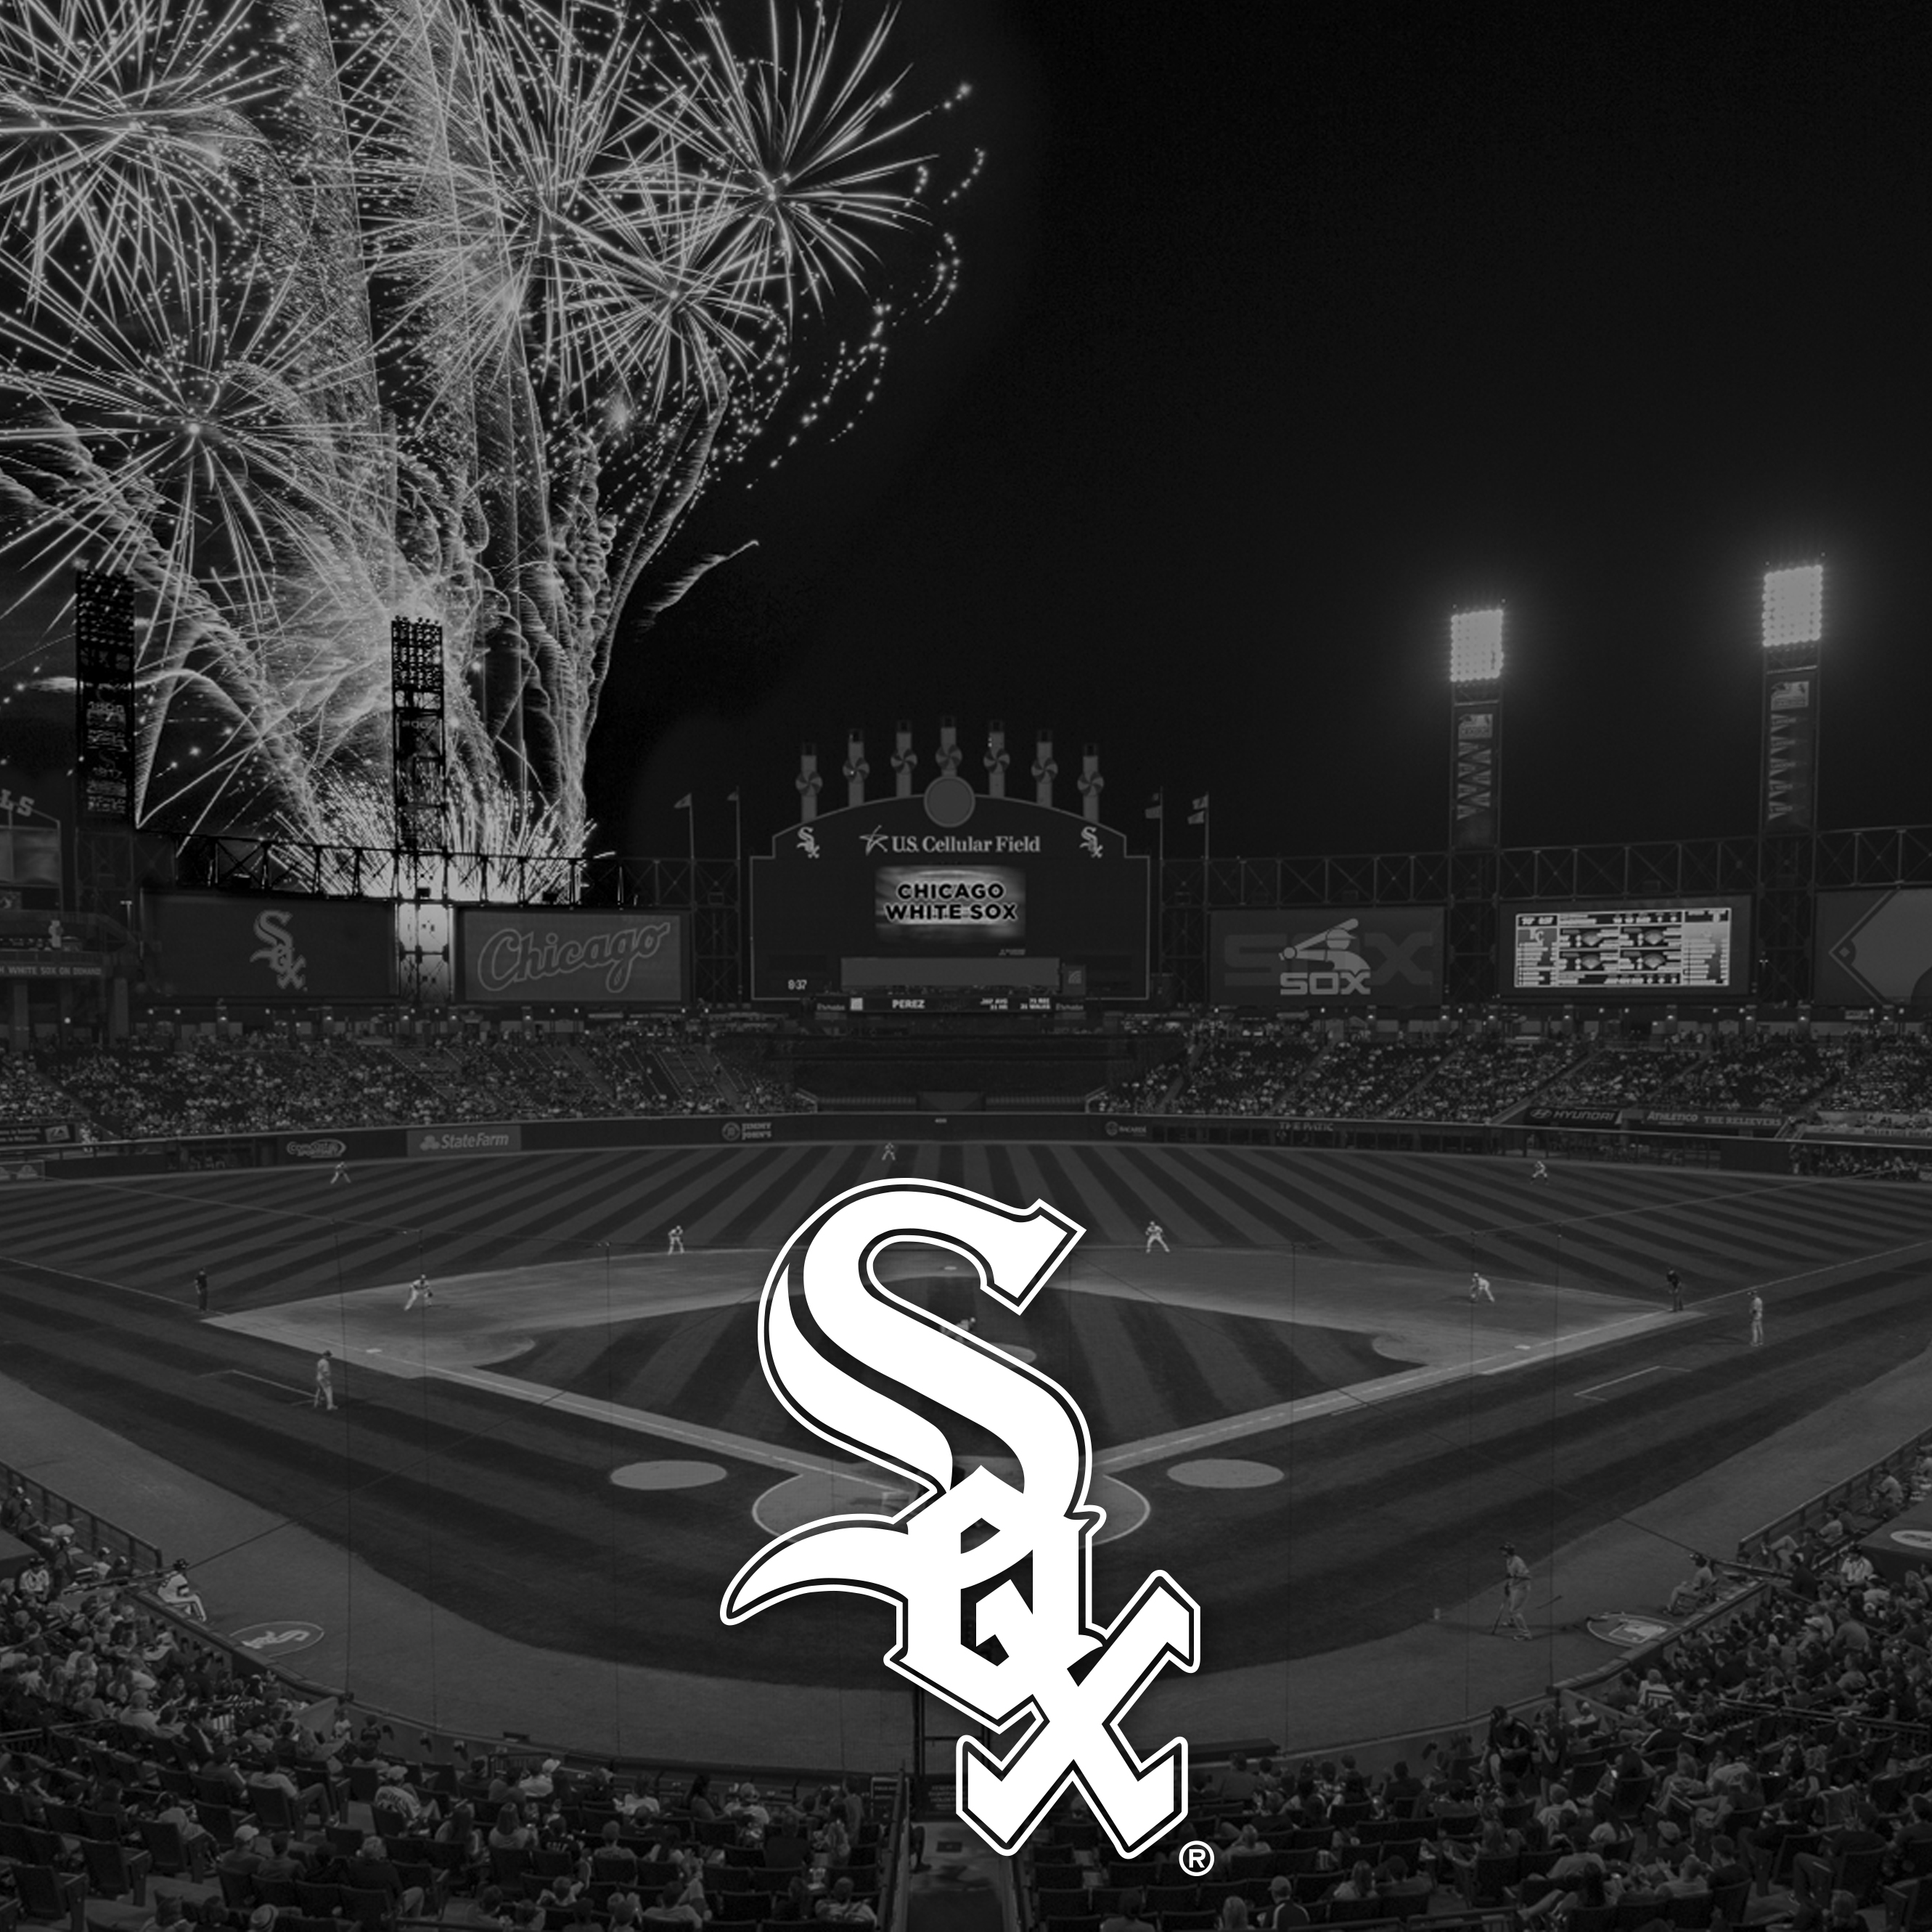 2662x2662 > Chicago White Sox Wallpapers